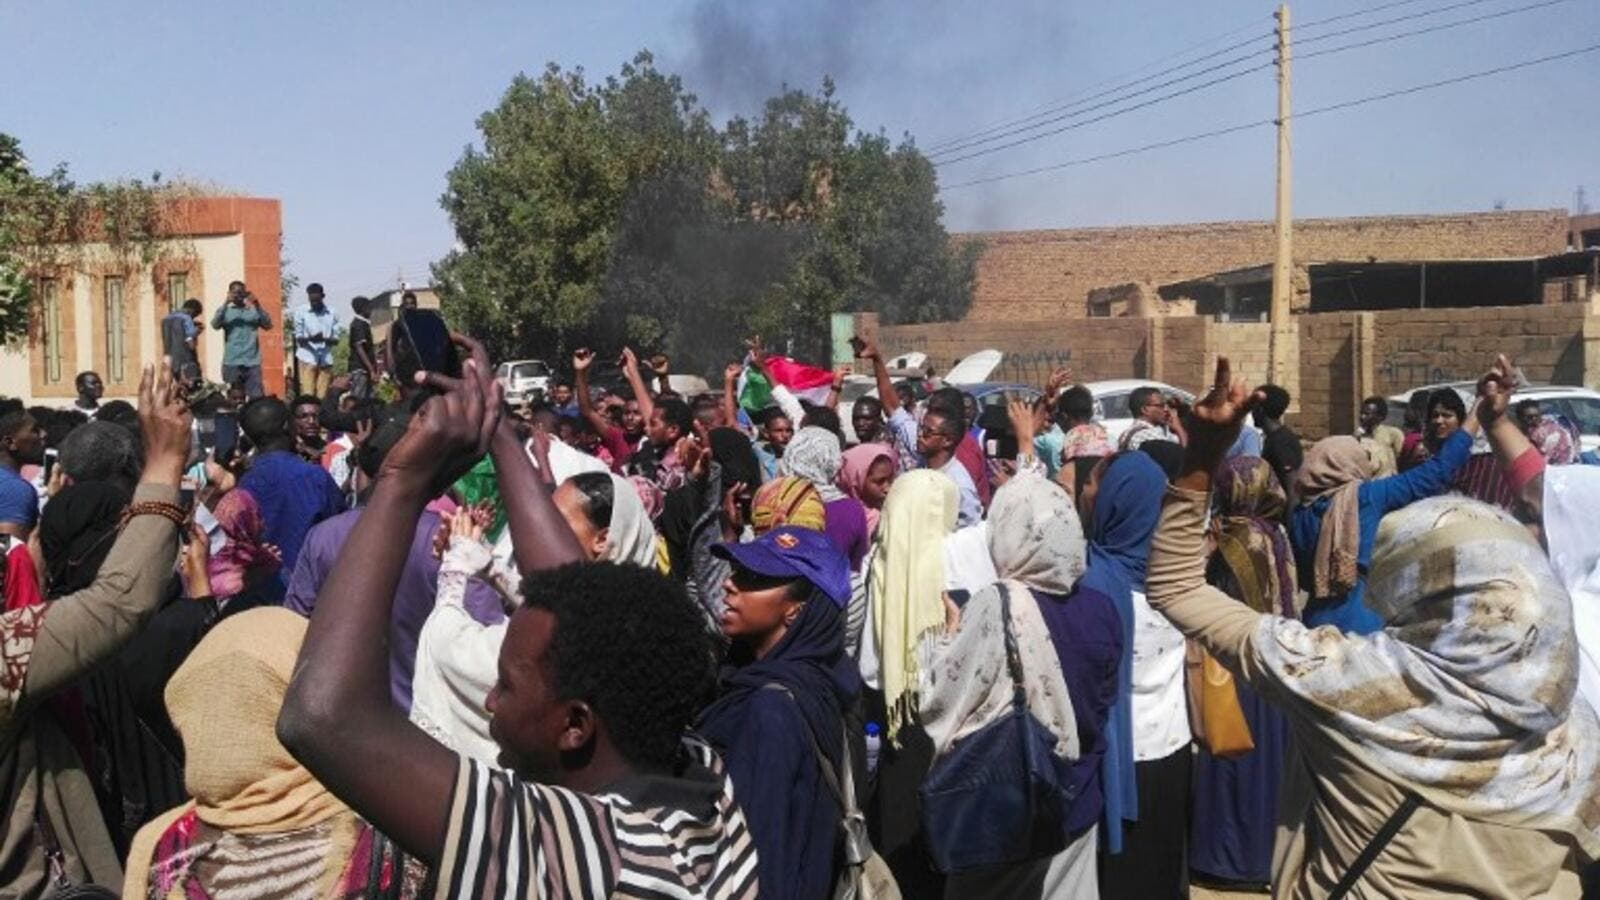 Sudanese protesters chant slogans during an anti-government demonstration in Khartoum's twin city of Omdurman on March 10, 2019. (AFP/File)